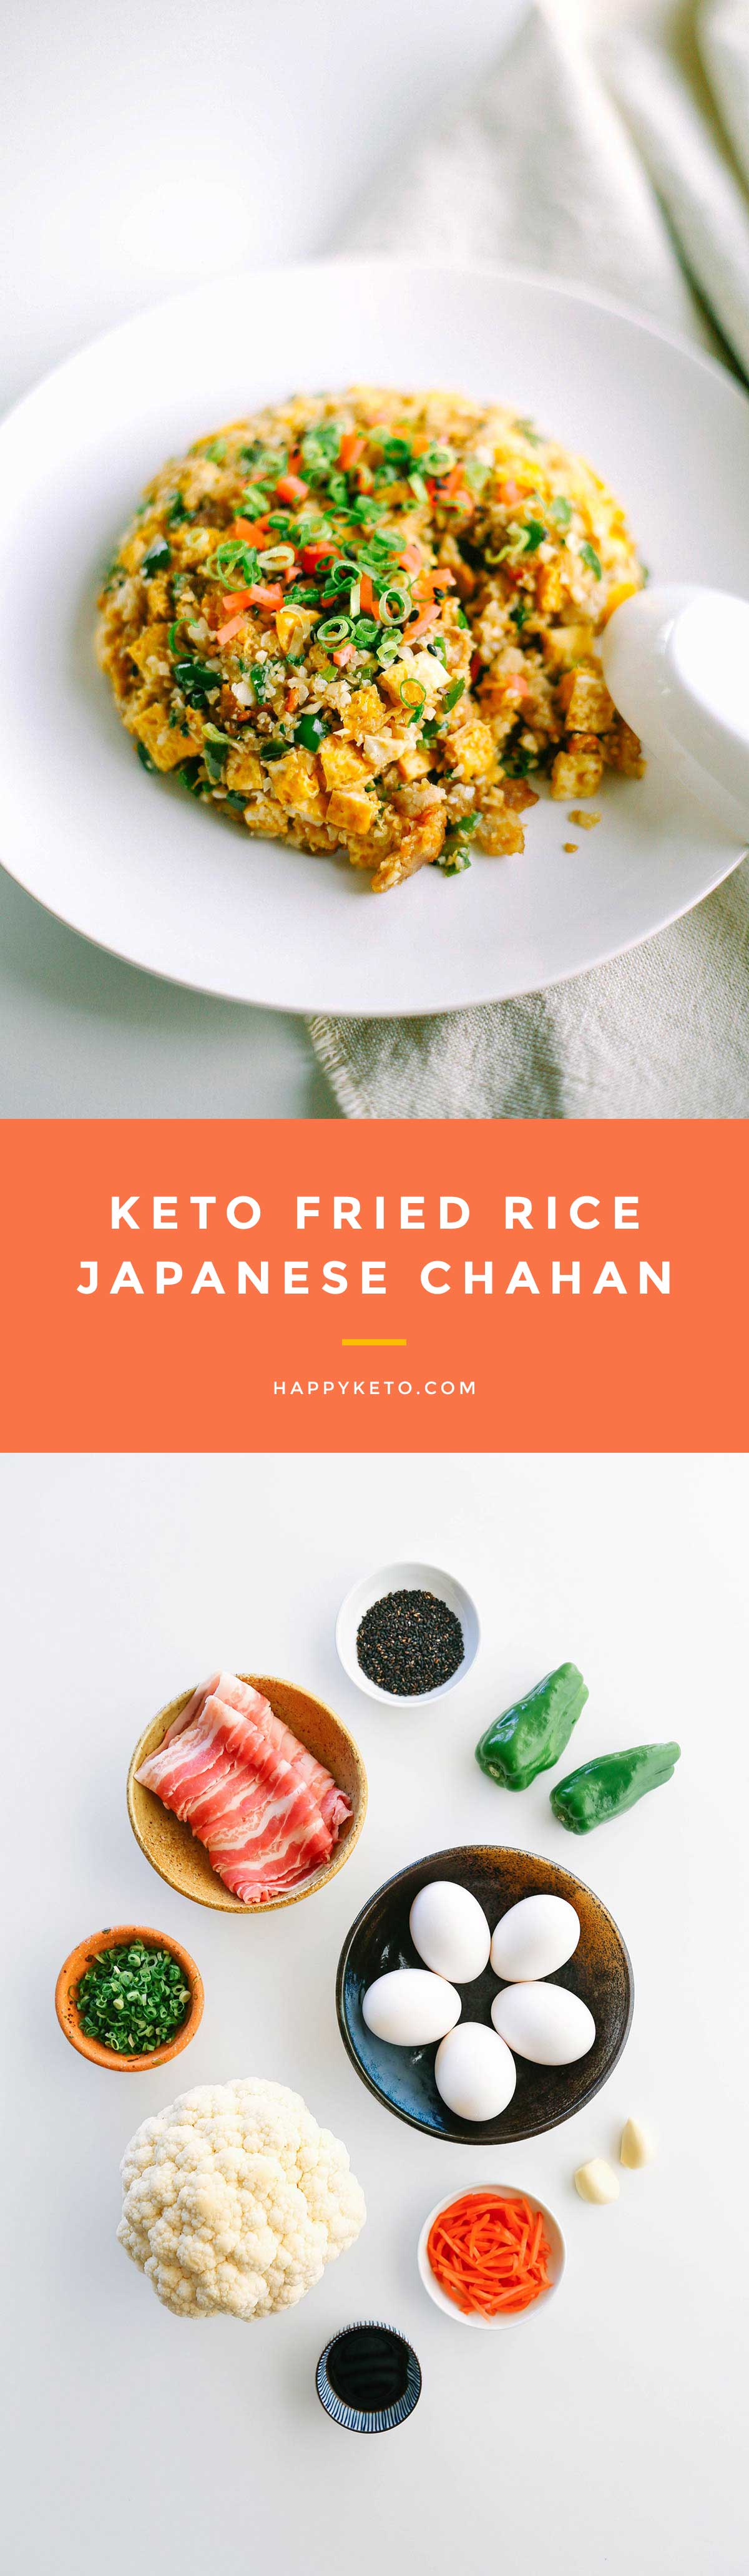 Keto fried rice for low carb. Easy chahan recipe using cauliflower rice and pork.